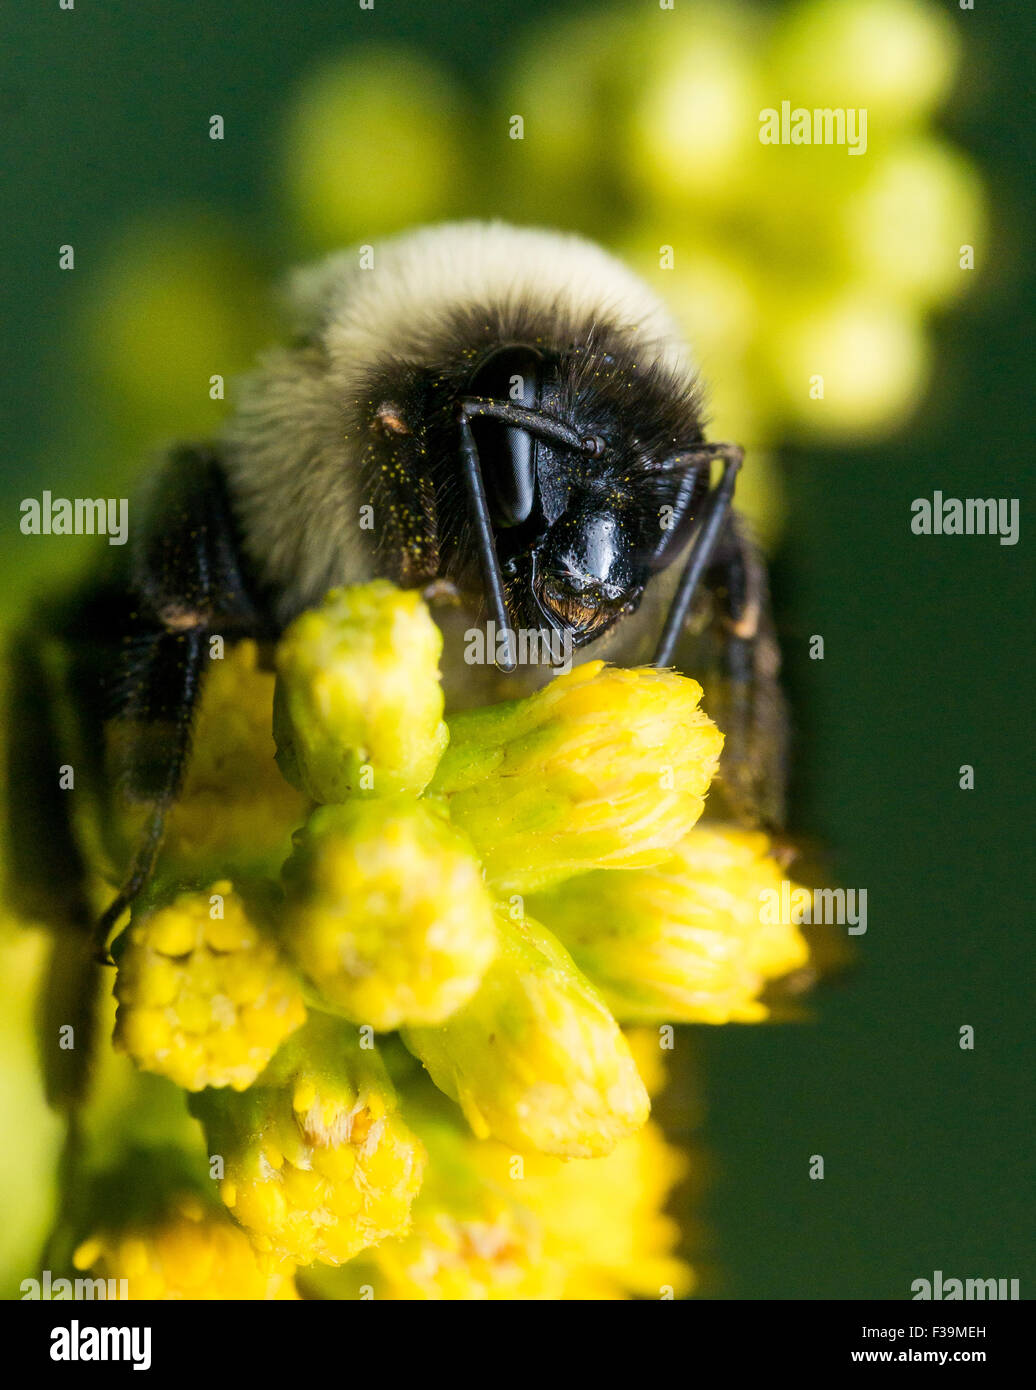 bumble bee with bright golden fur close up portrait - Stock Image